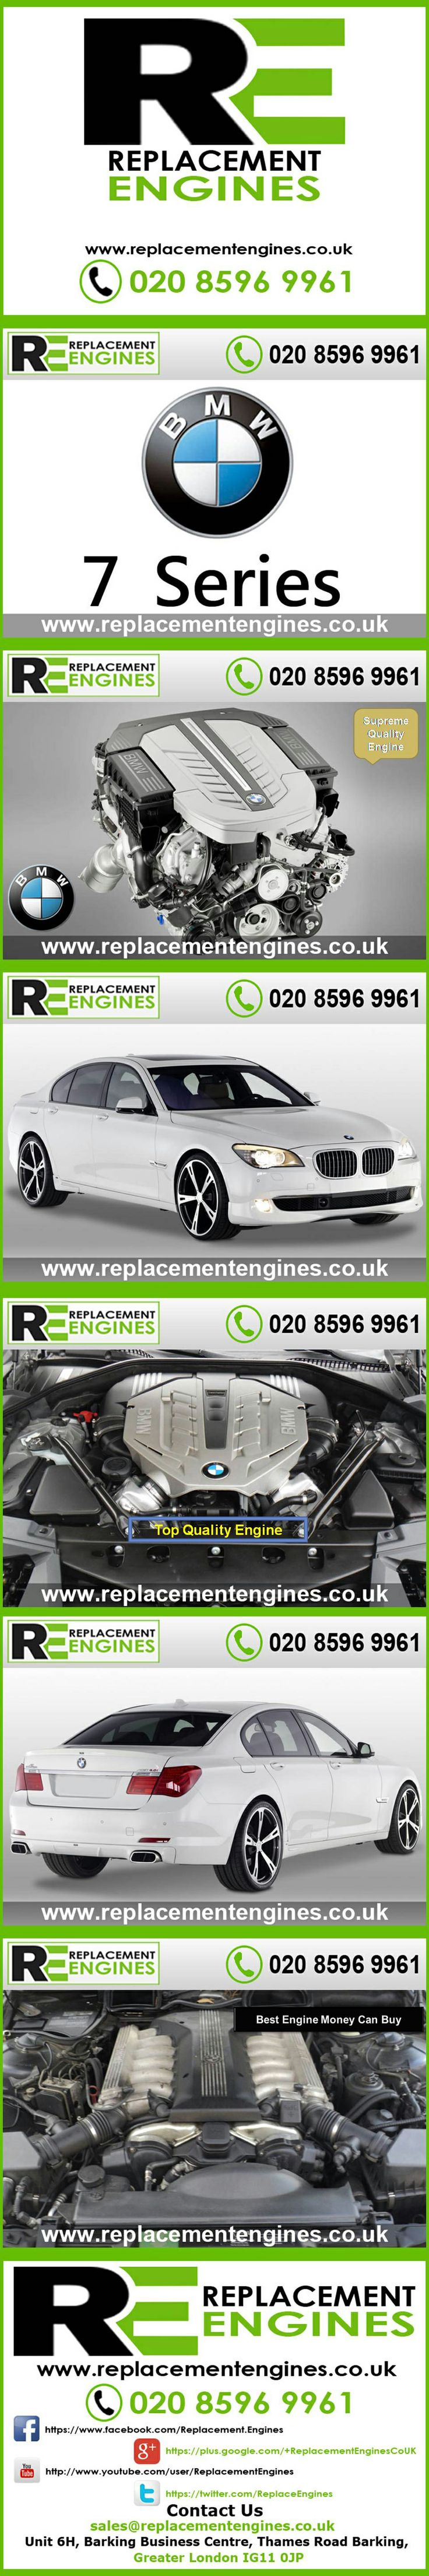 BMW 7 Series Engines for sale at the cheapest prices, we have low mileage used & reconditioned engines in stock now, ready to be delivered to anywhere in the UK or overseas, visit Replacement Engines website here.  http://www.replacementengines.co.uk/car-mk.asp?part=all-bmw-engine